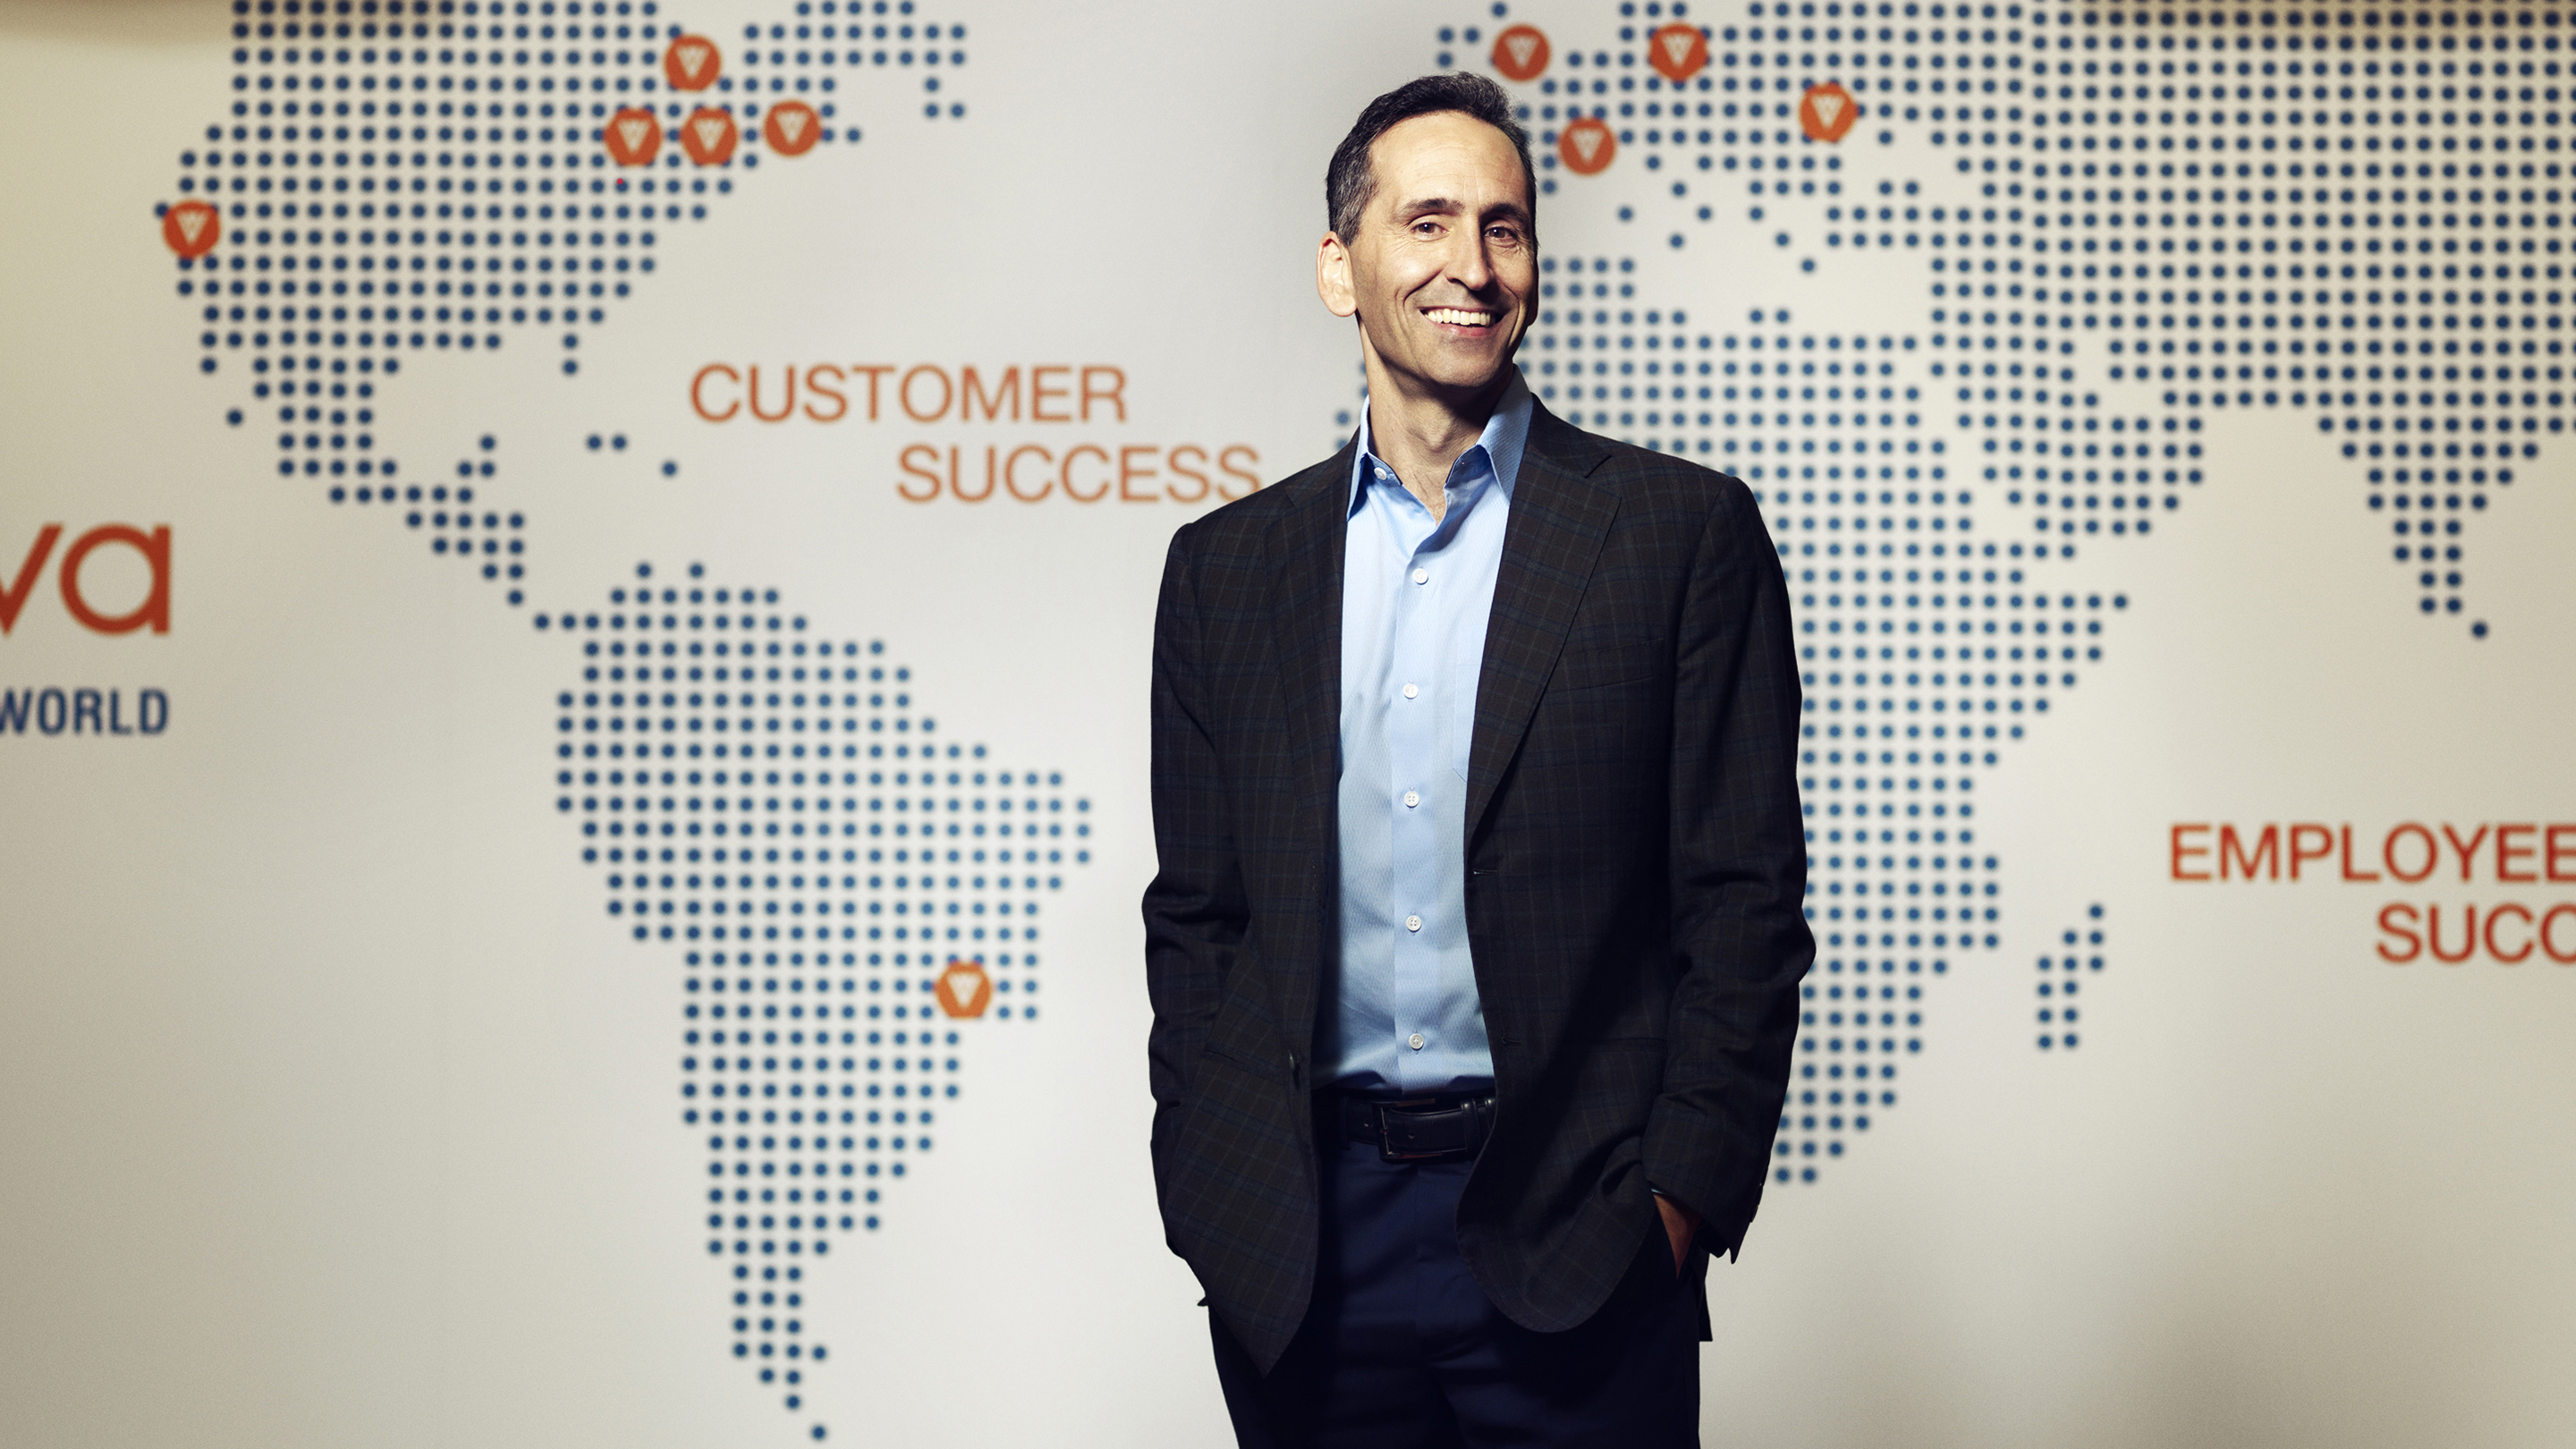 Peter Gassner of Veeva Systems photographed 4/17 for forbes.